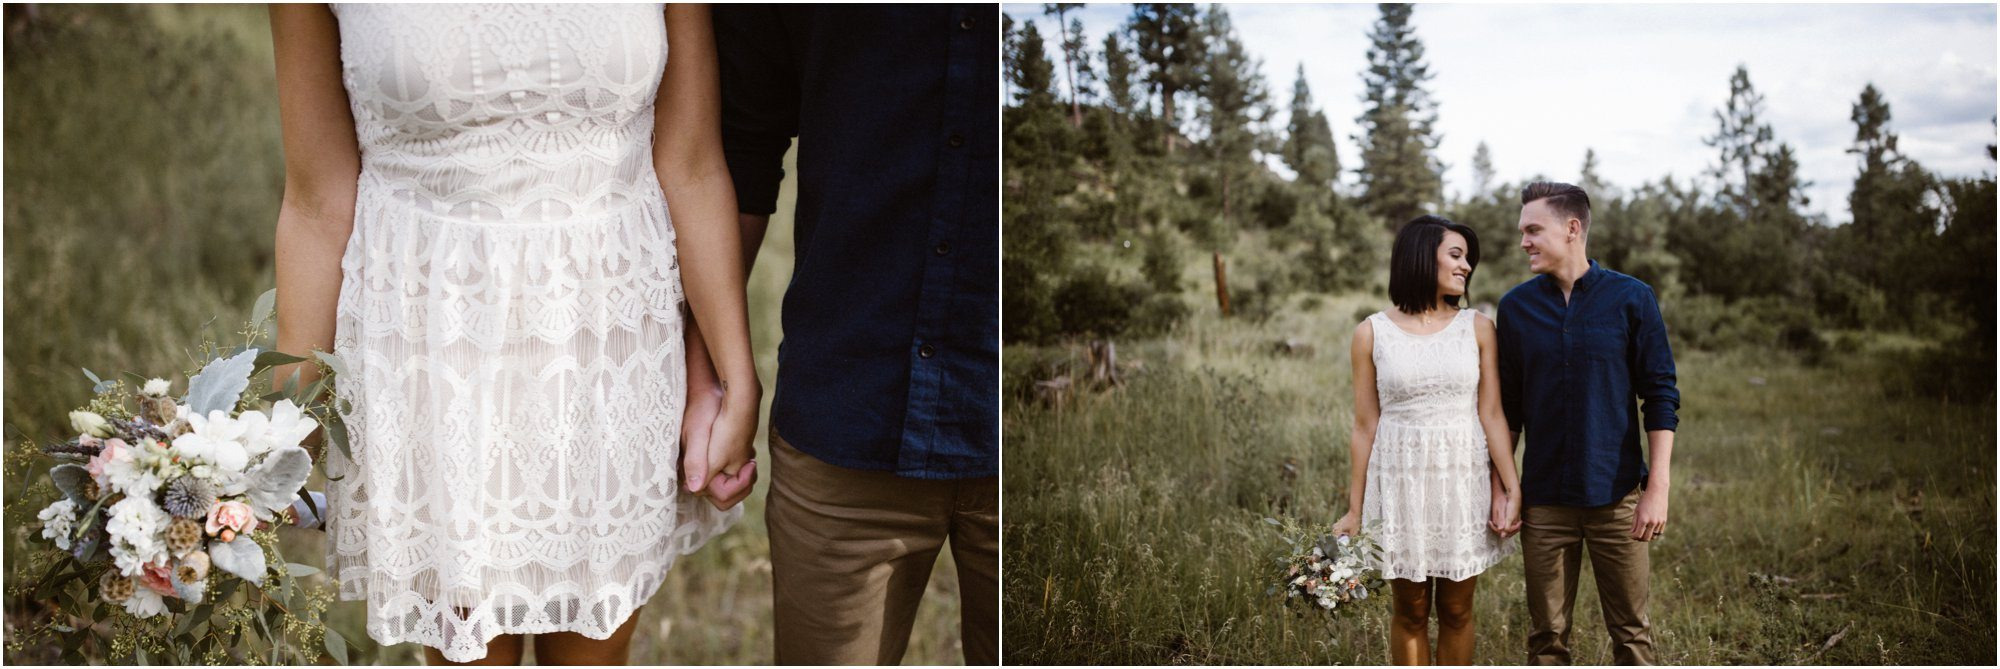 026Blue Rose Photography_ Albuquerque Engagement Photographer_ Blue Rose Studios_ Anniversary Pictures Santa Fe Photographer